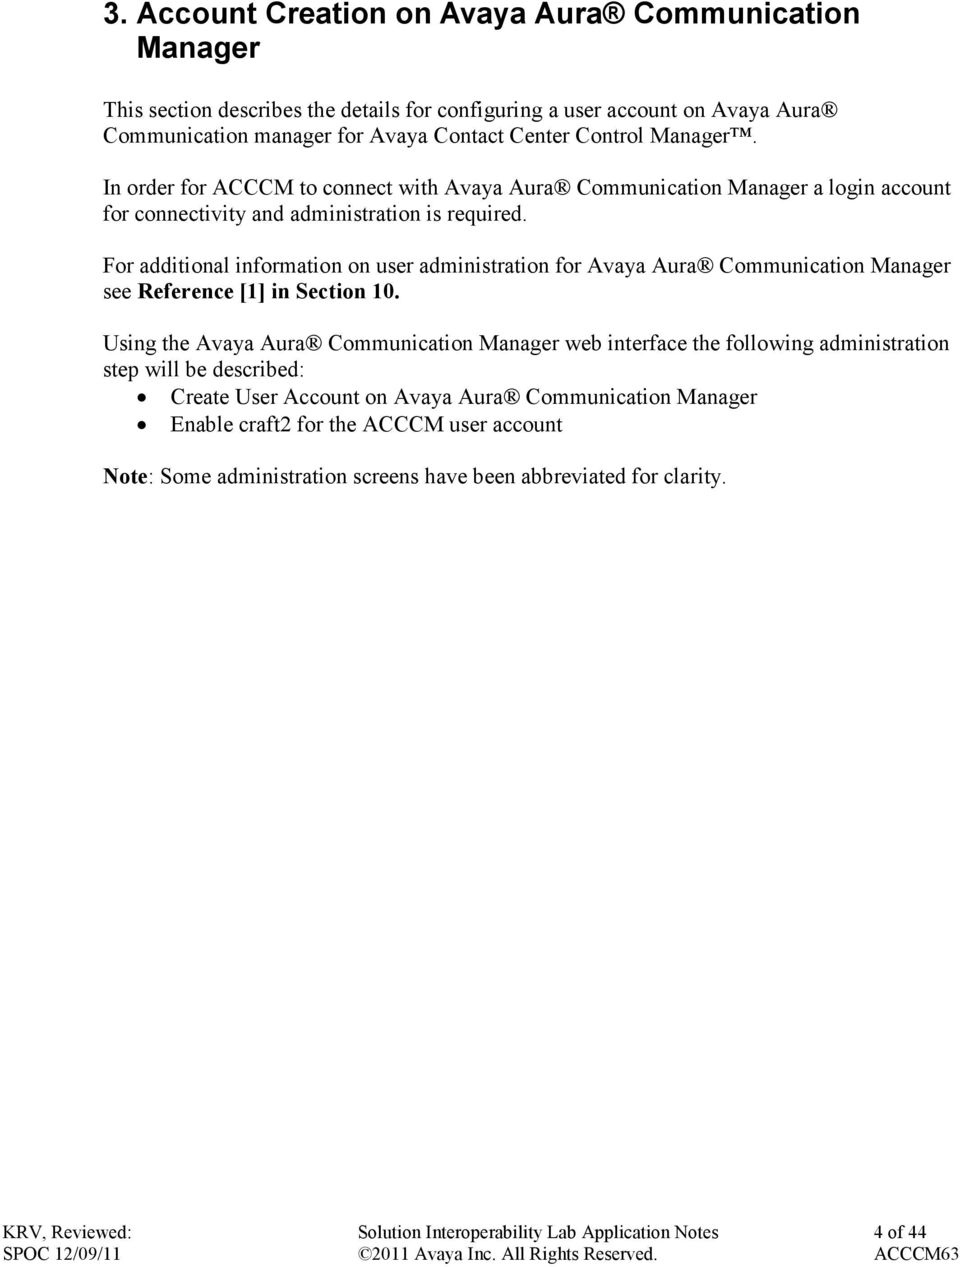 For additional information on user administration for Avaya Aura Communication Manager see Reference [1] in Section 10.